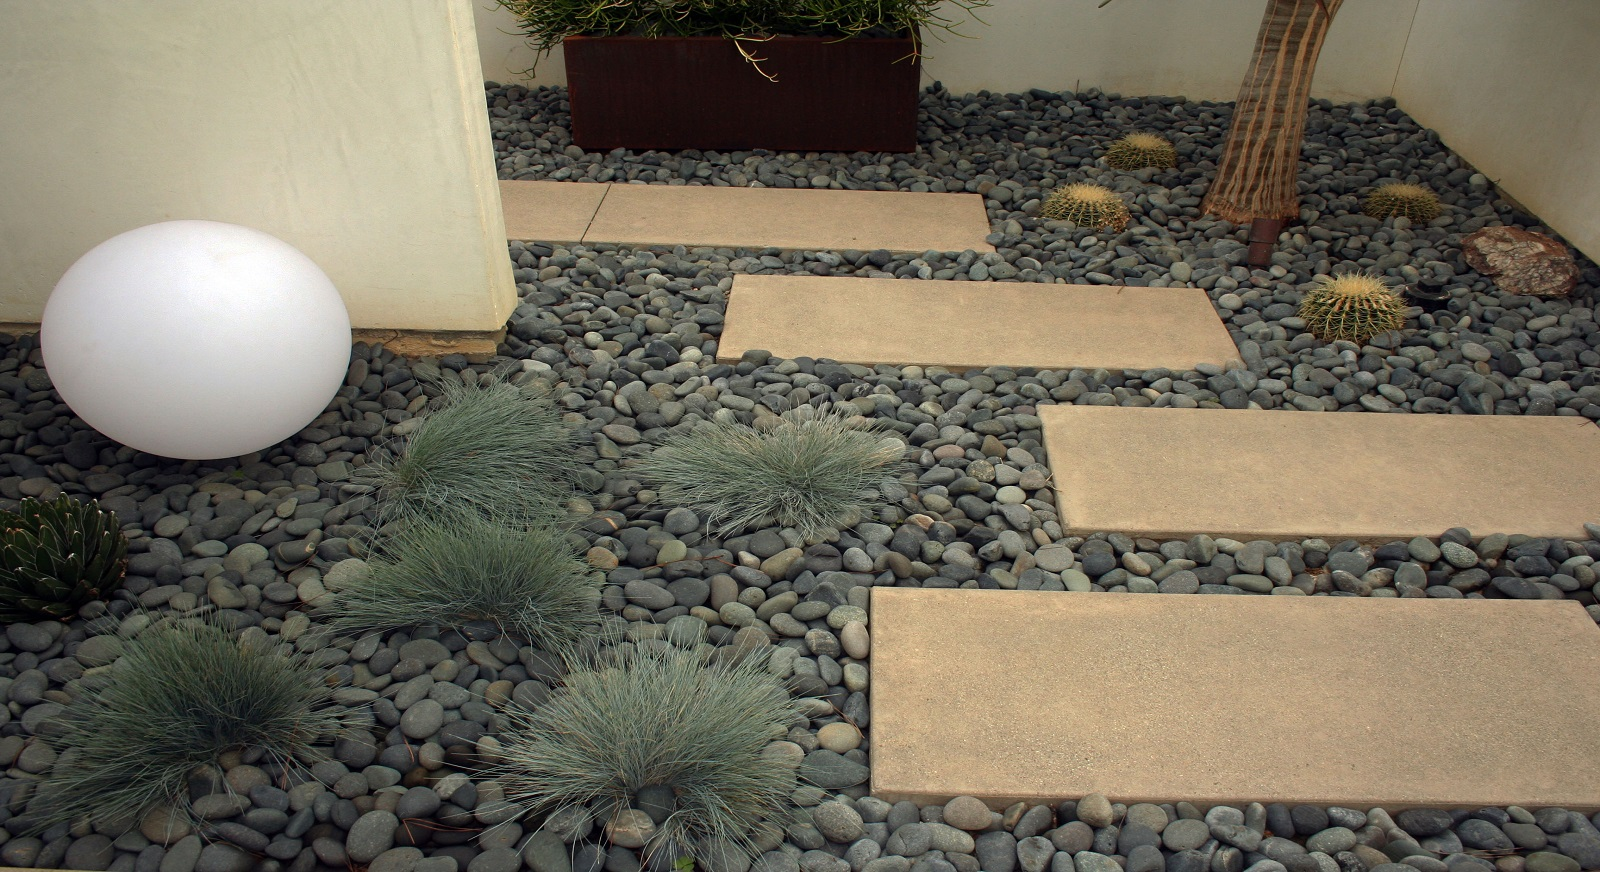 cross construction remodel landscape hardscape plants corten